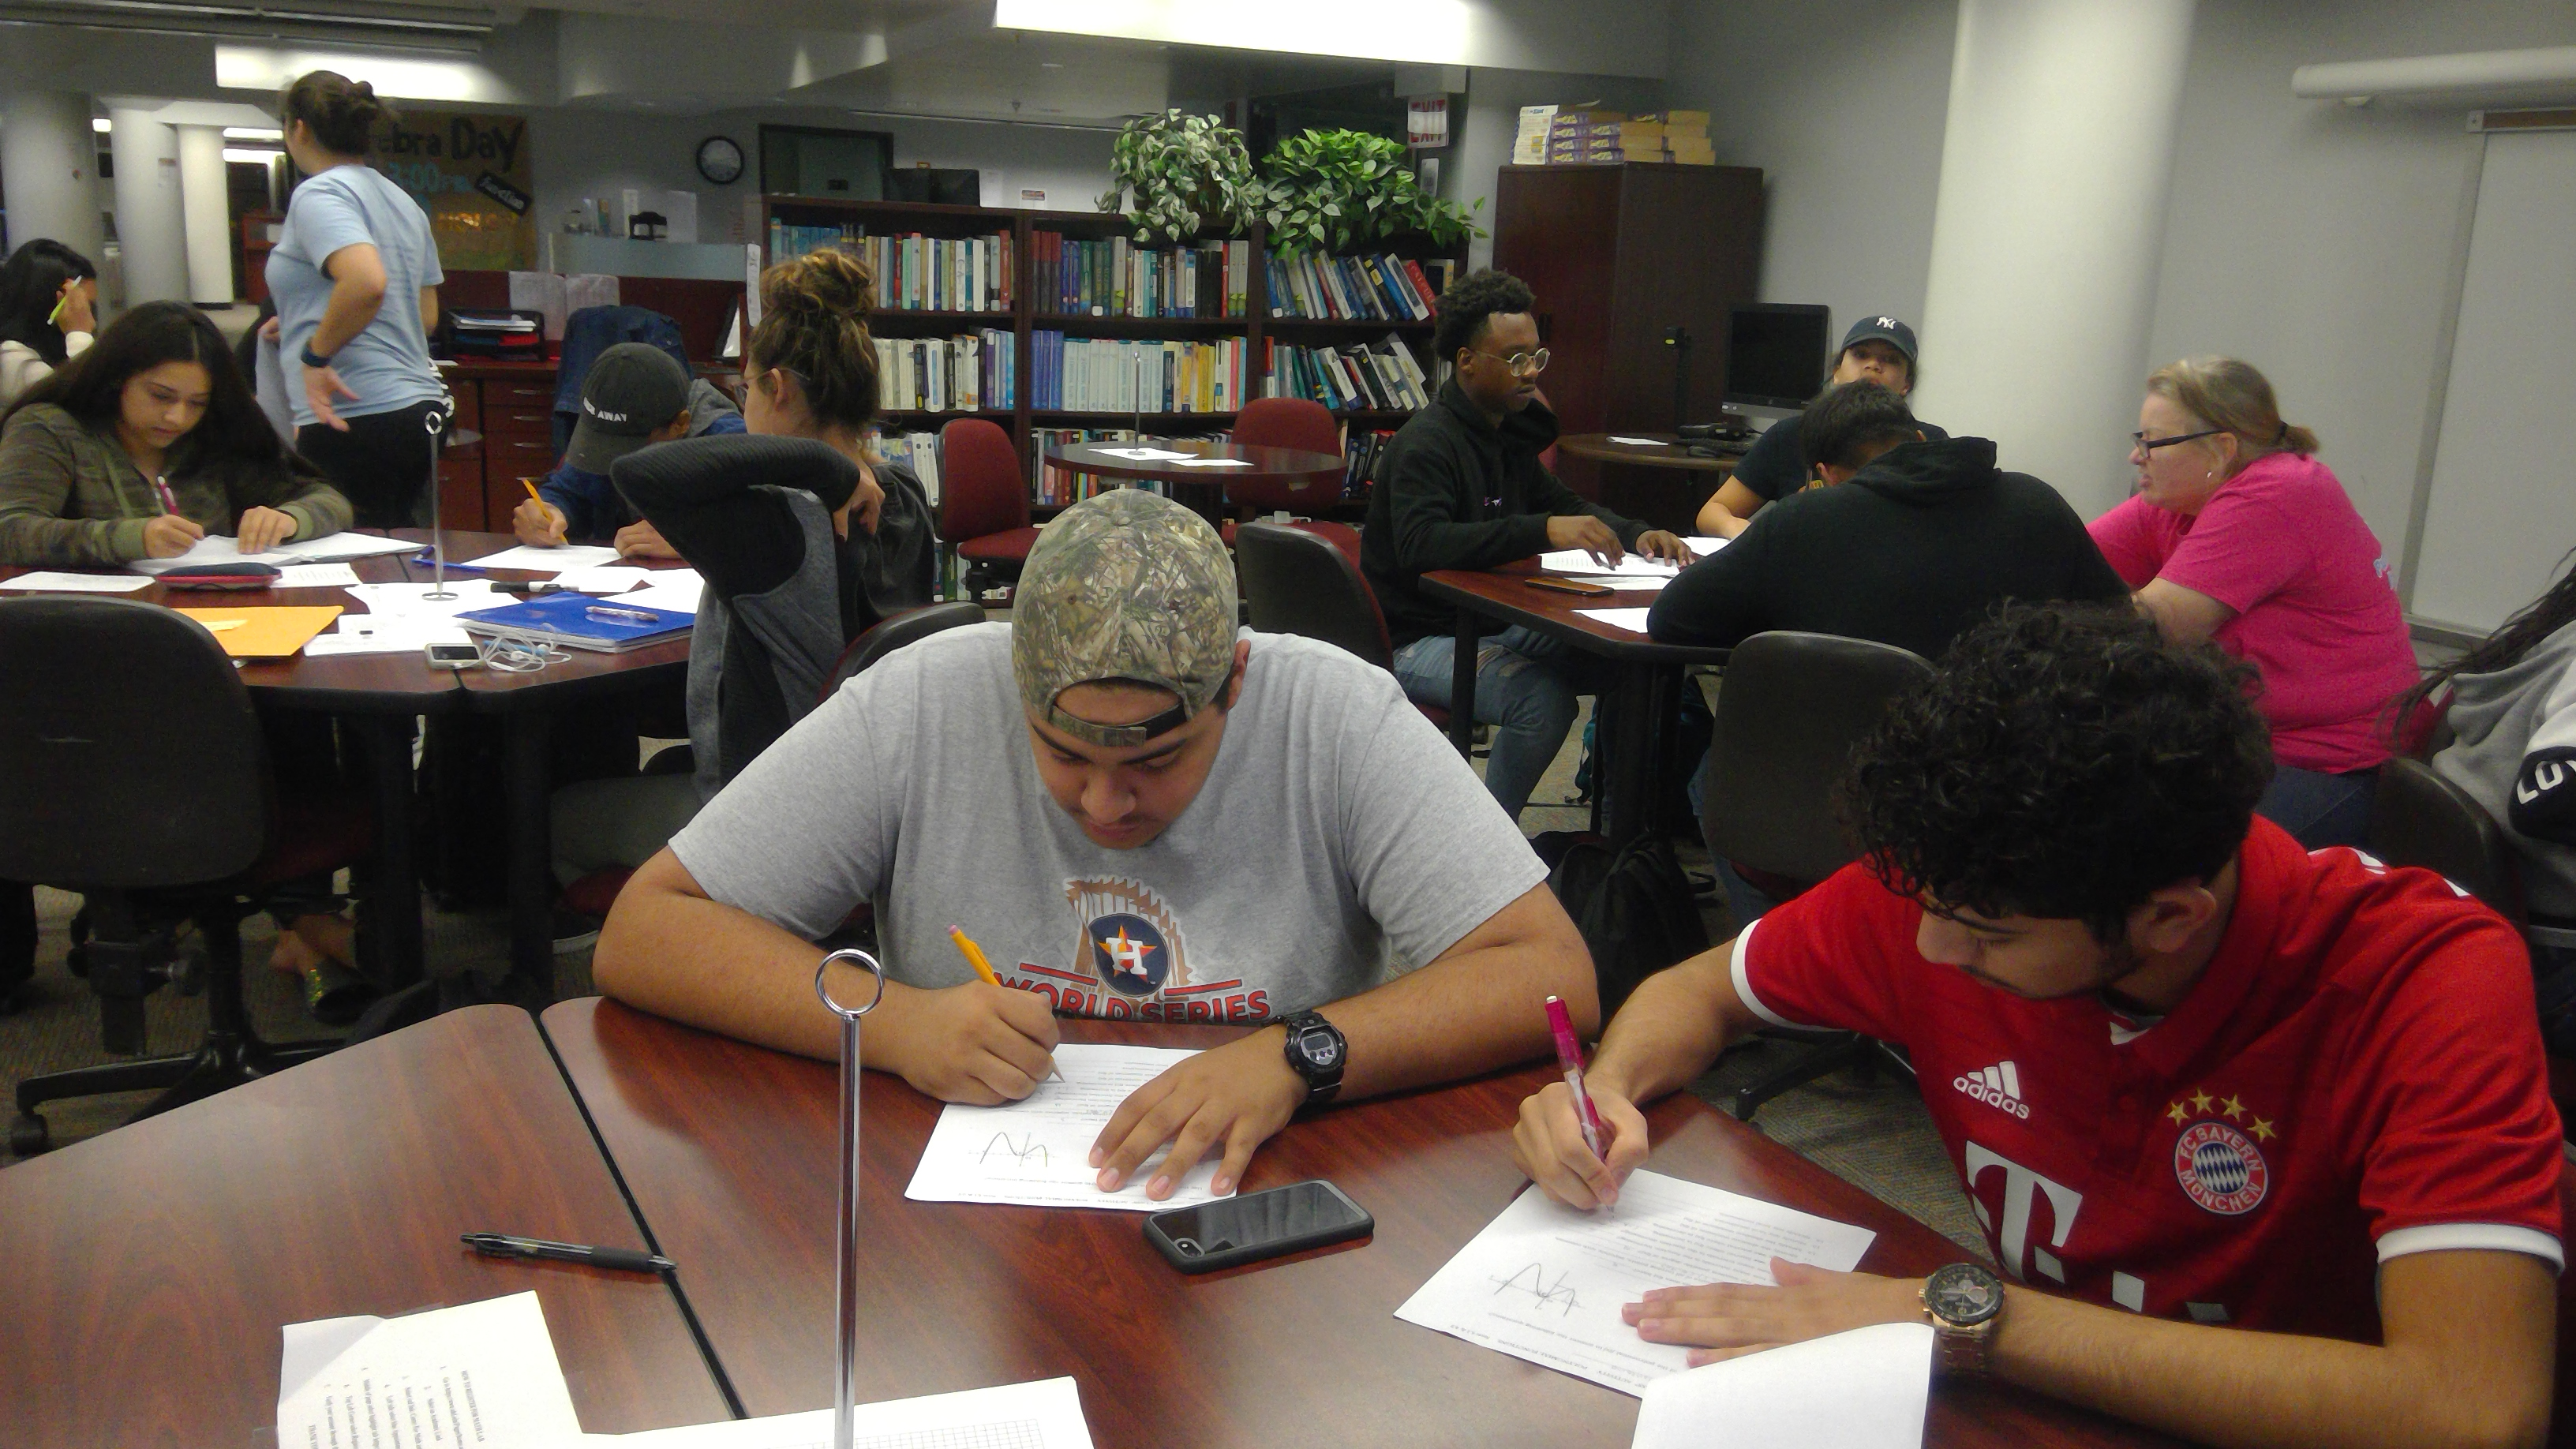 Tutoring Session in Academic Support Center